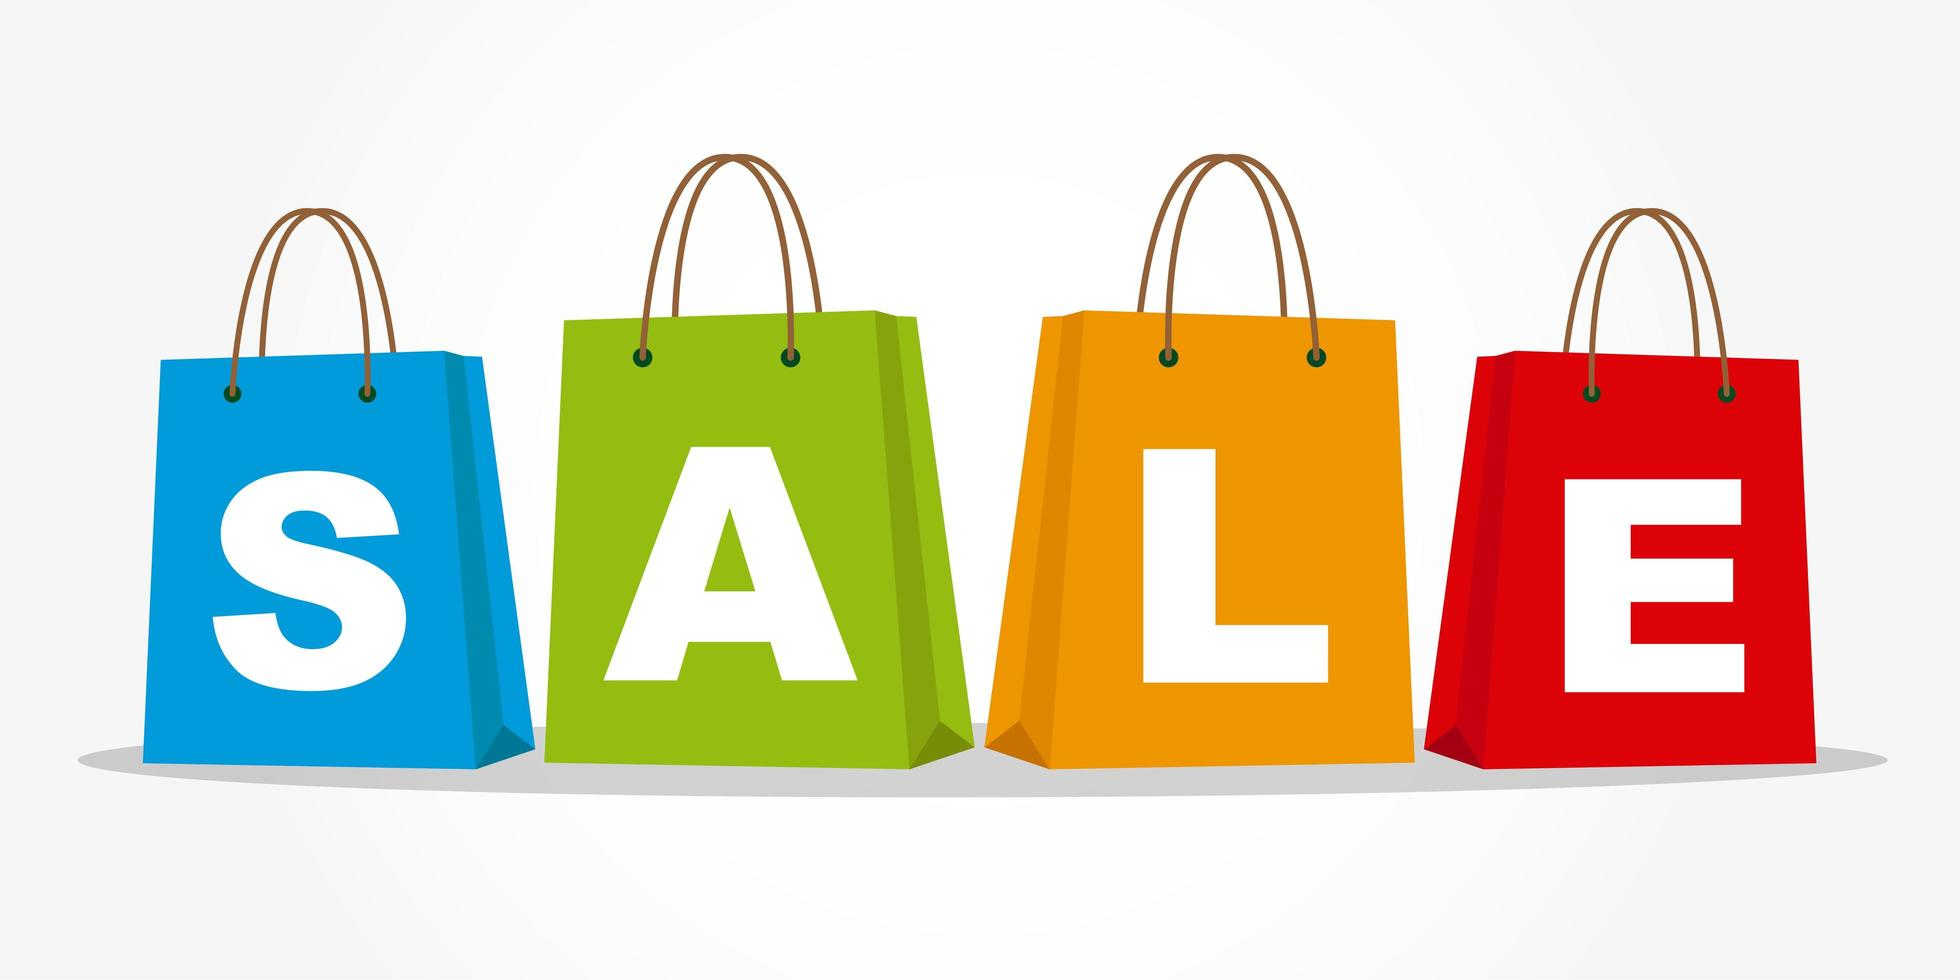 Shopping bags with SALE text vector